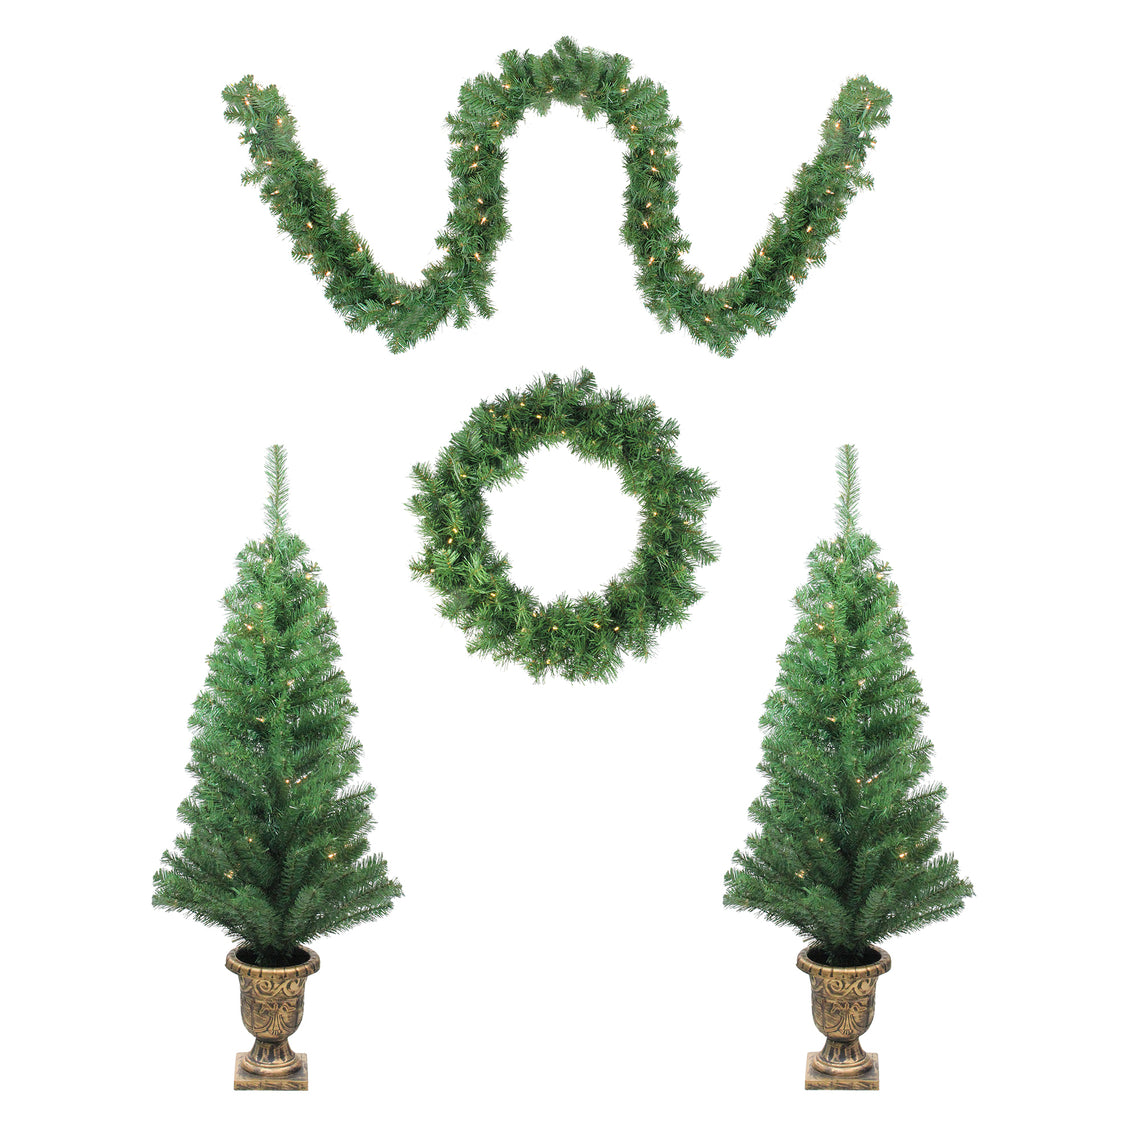 5-Piece Artificial Winter Spruce Christmas Trees  Wreath and Garland Set - Clear Lights